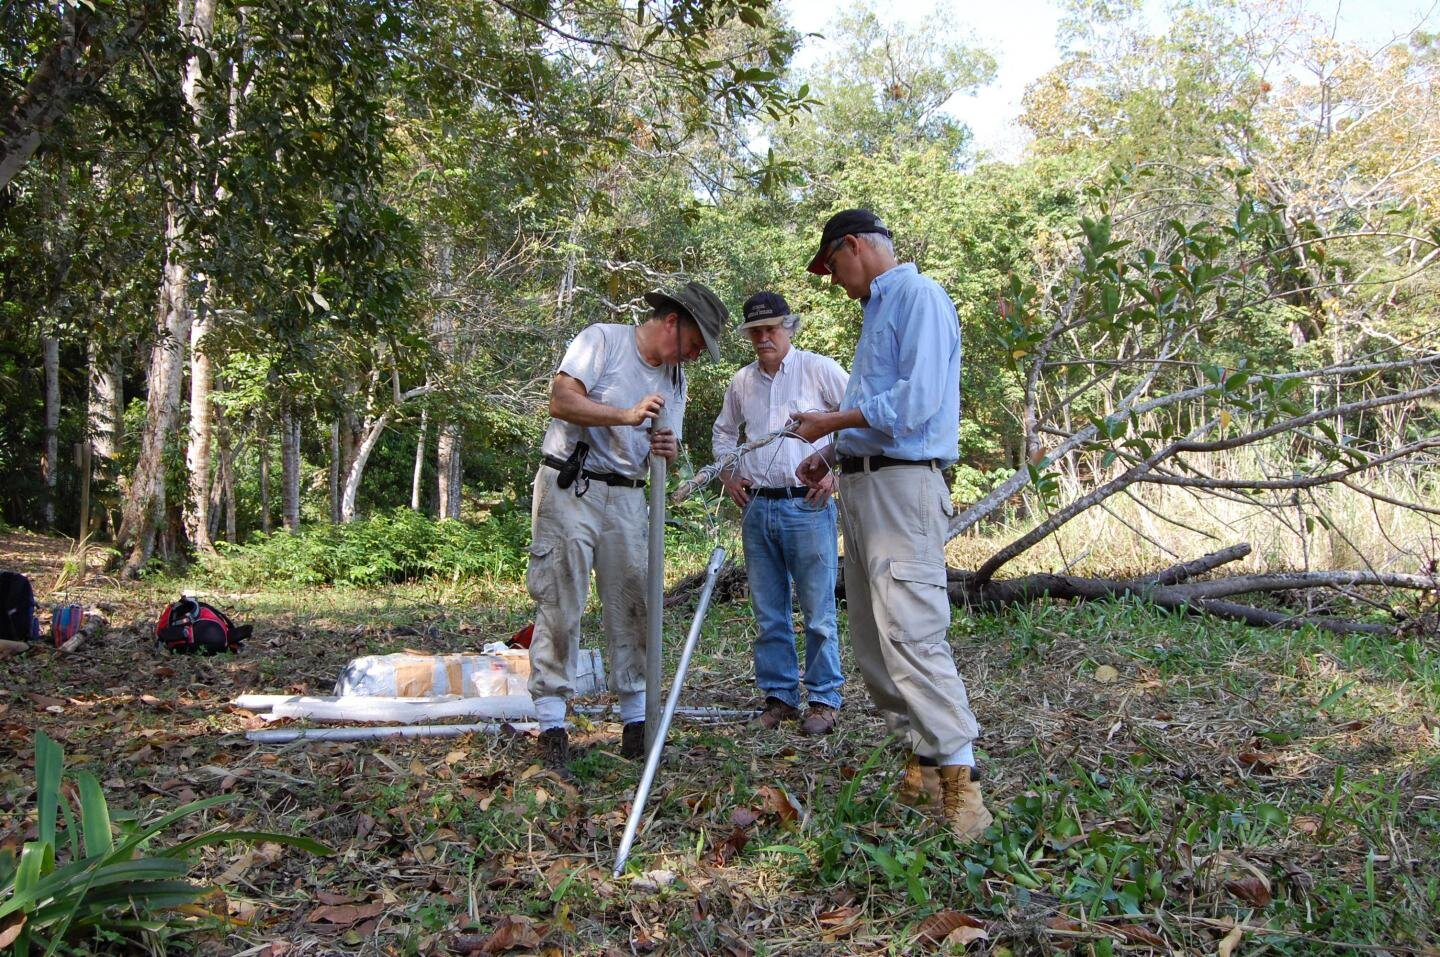 UC researchers Nicholas Dunning, left, Vernon Scarborough and David Lentz set up equipment to take sediment samples during their field research at Tikal. Credit: Liwy Grazioso Sierra